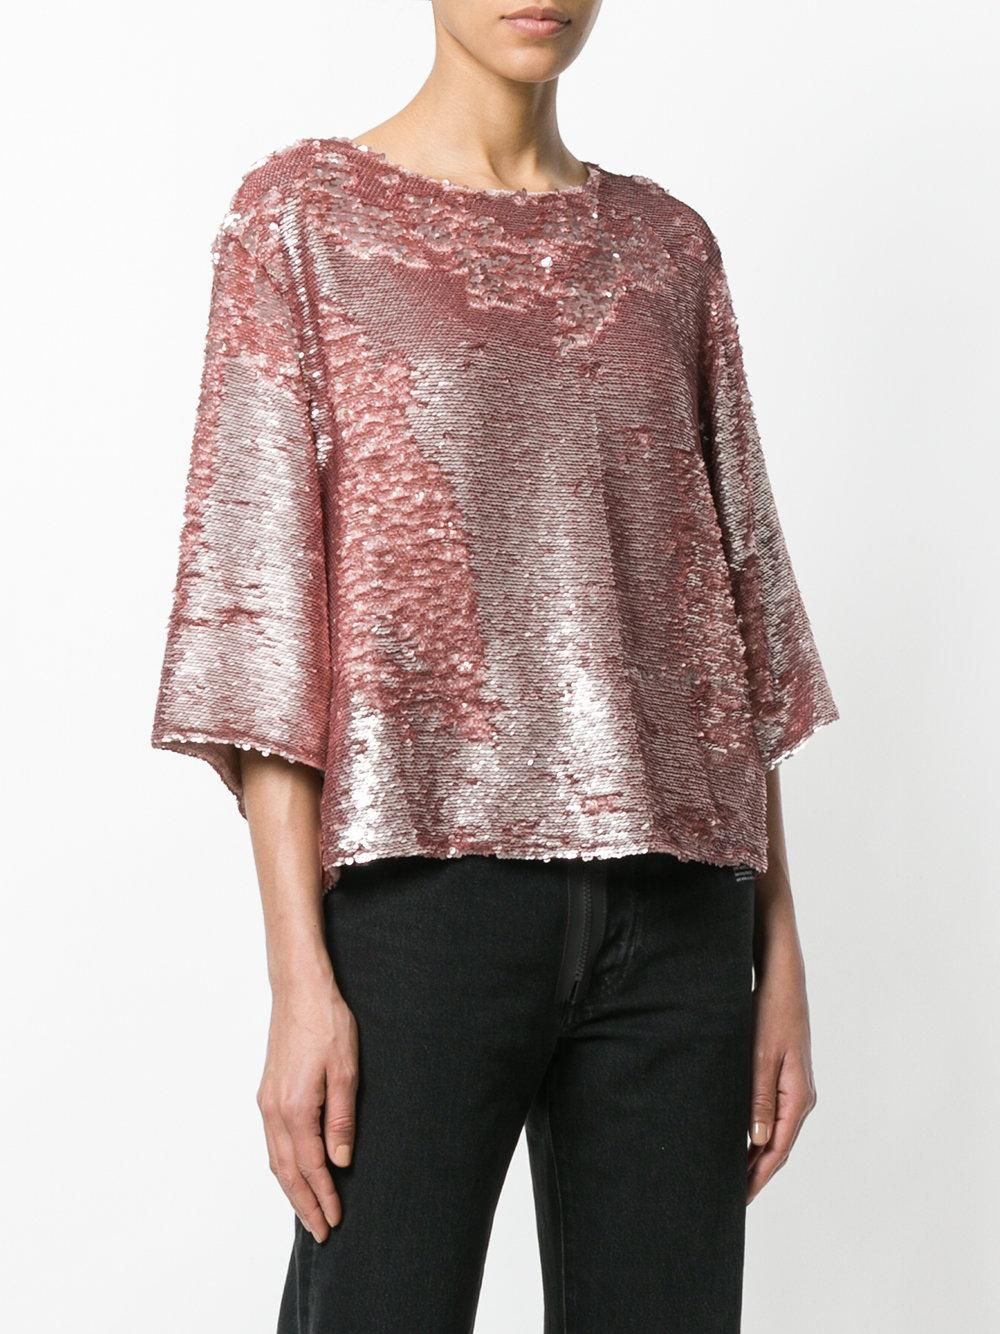 sequined blouse - Pink & Purple Amen Clearance The Cheapest Buy Cheap Inexpensive aRejWH4